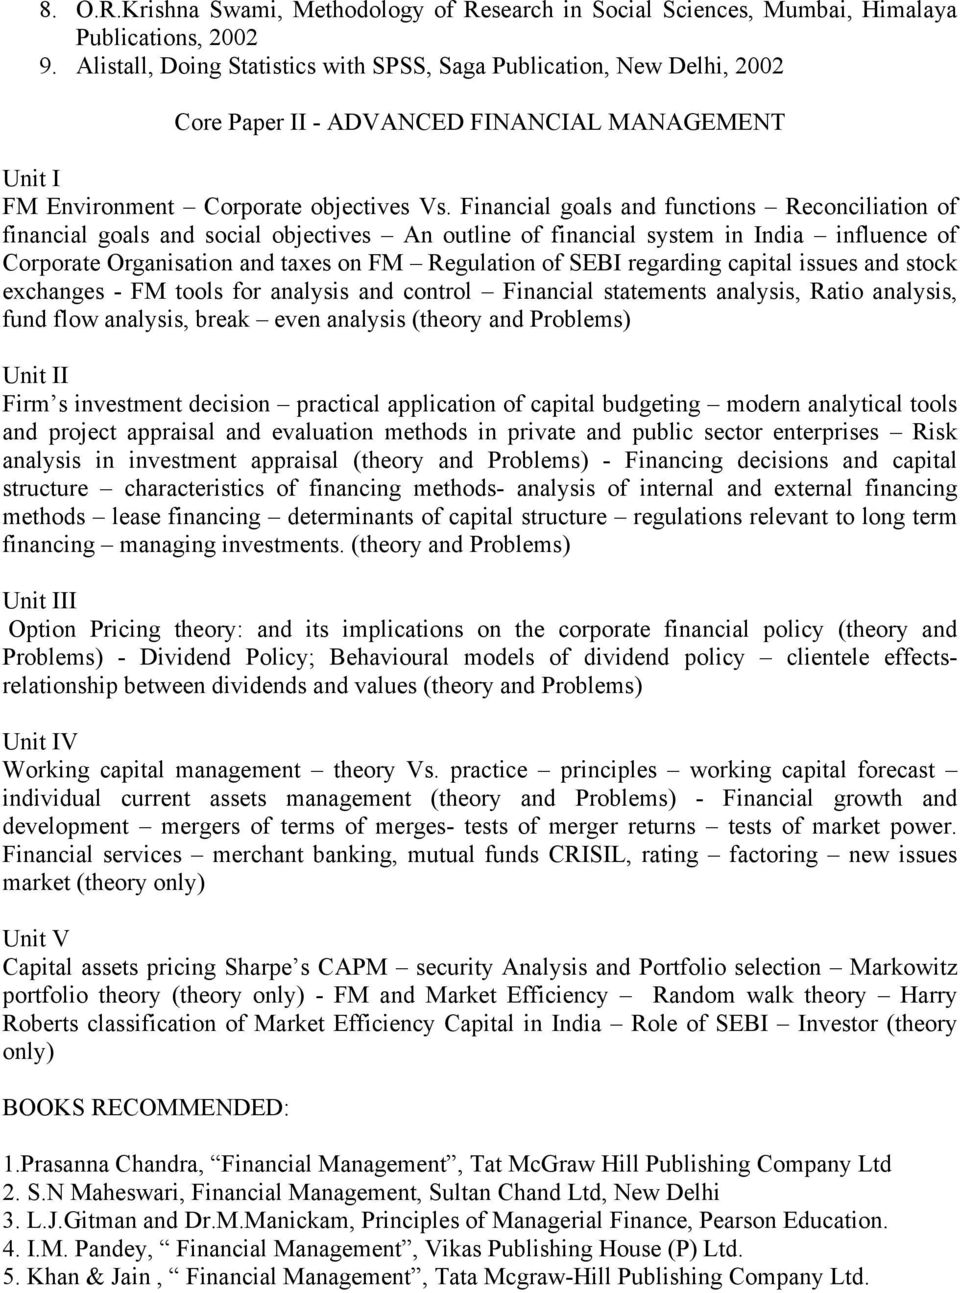 Financial goals and functions Reconciliation of financial goals and social objectives An outline of financial system in India influence of Corporate Organisation and taxes on FM Regulation of SEBI